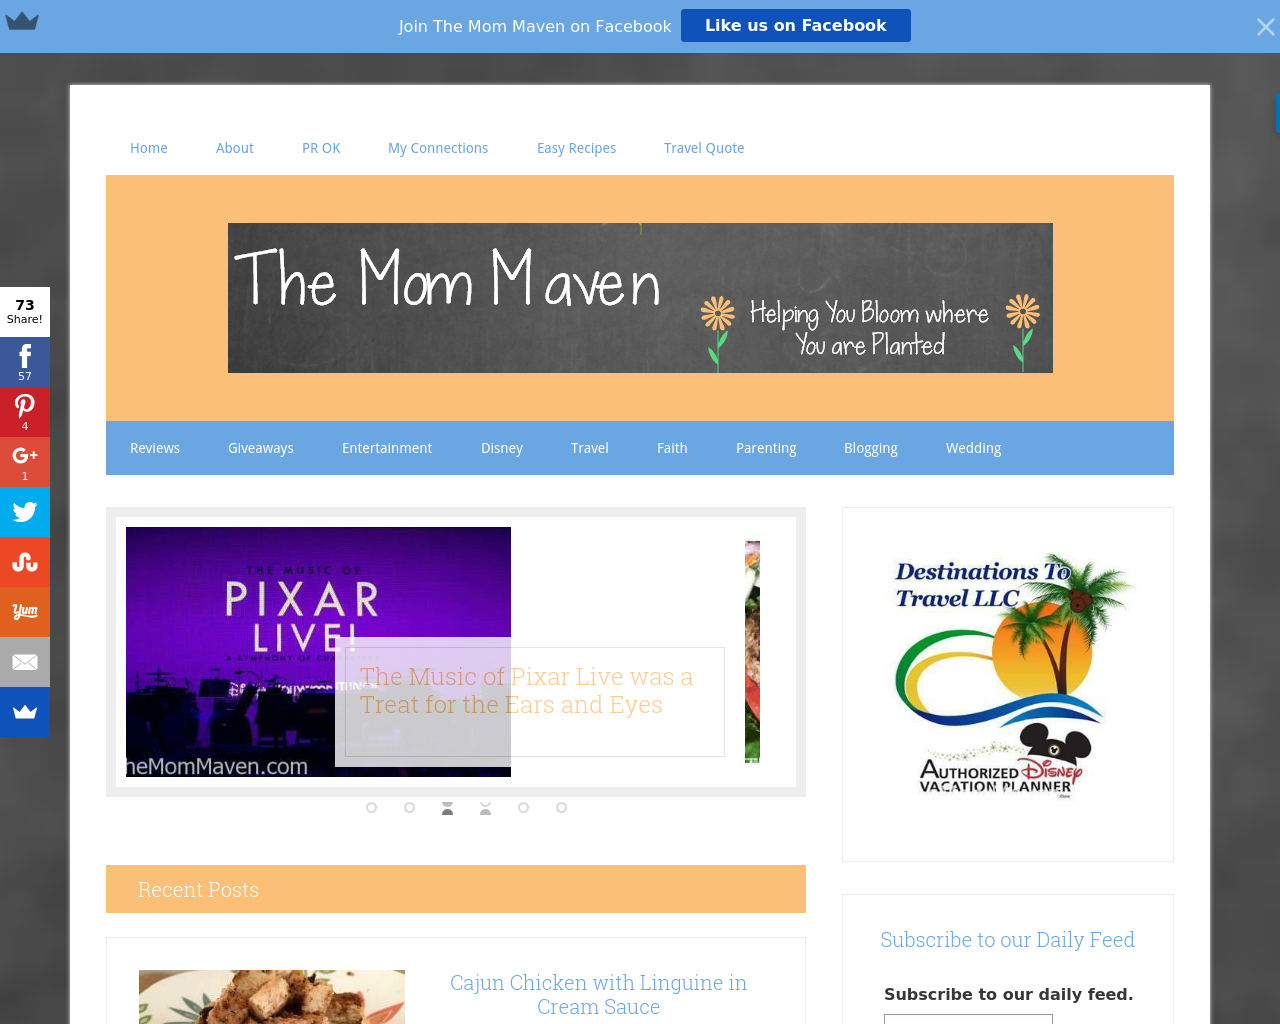 The-Mom-Maven-Advertising-Reviews-Pricing